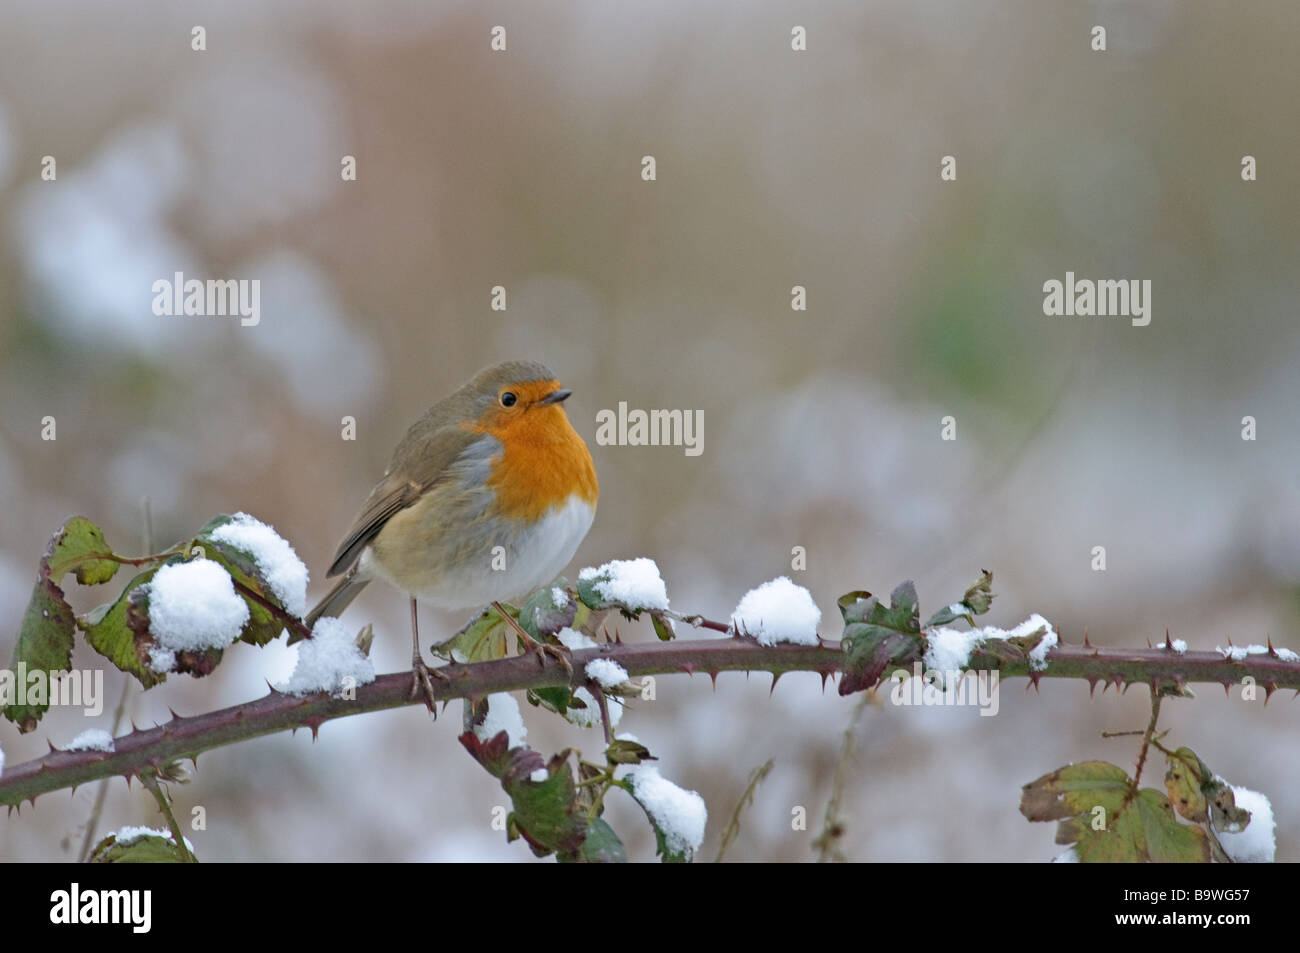 Robin Erithacus rubecula in snow Bedfordshire February - Stock Image